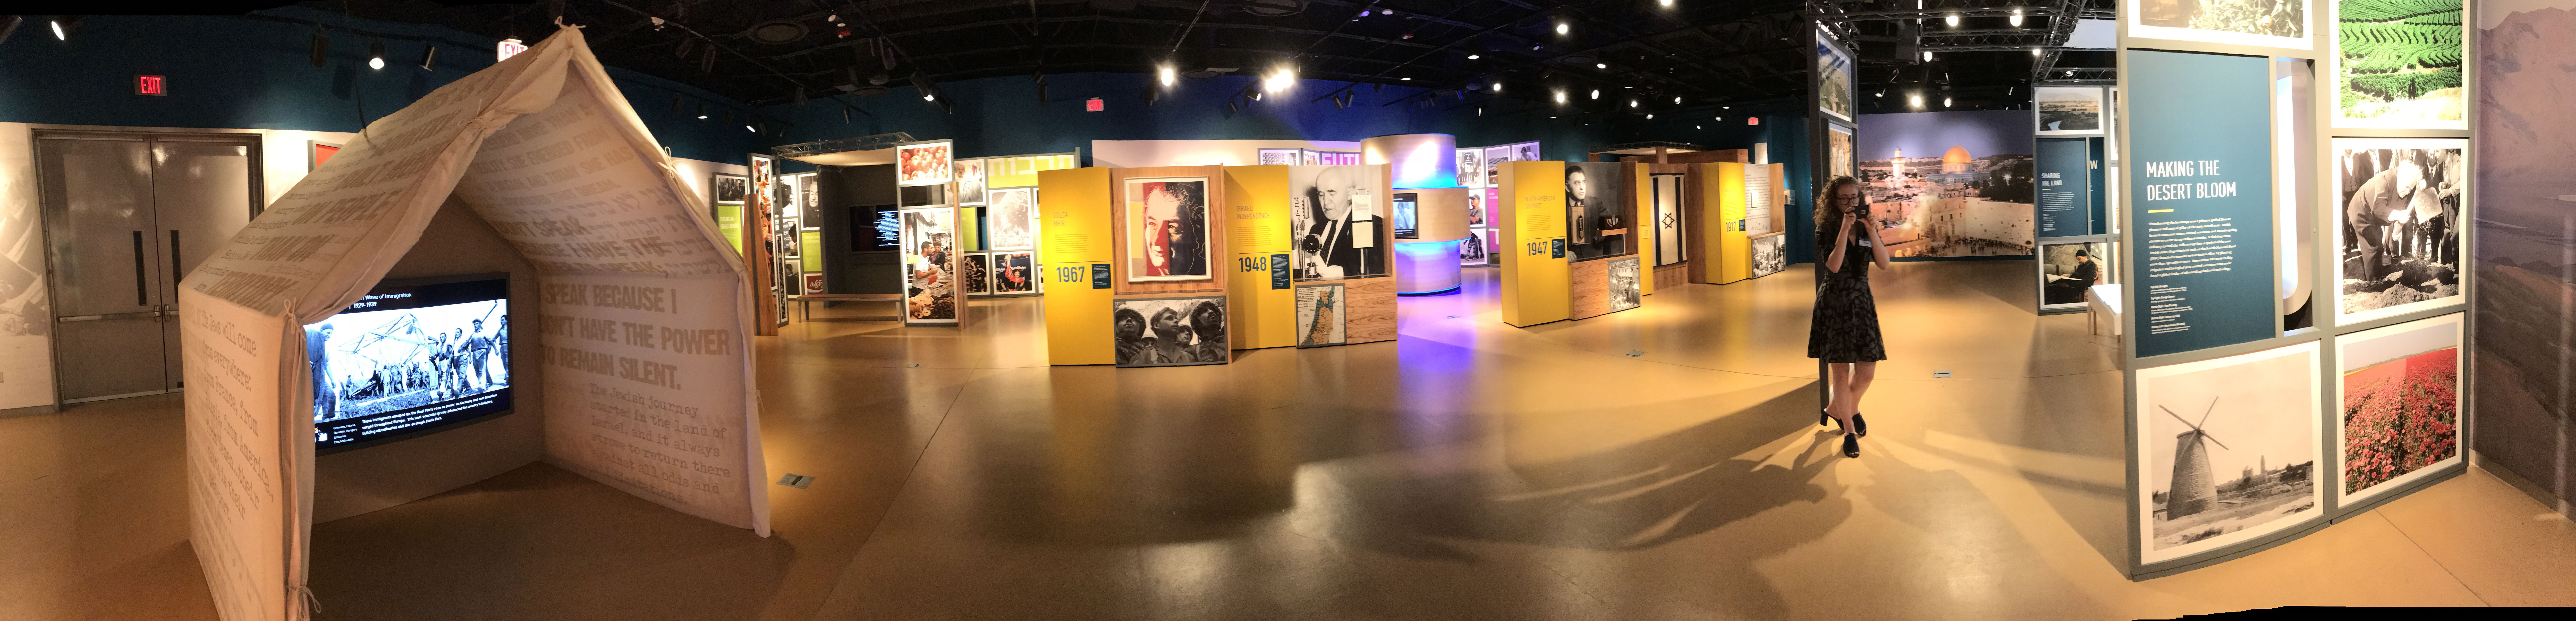 Israel: Then & Now Exhibition Panoramic View